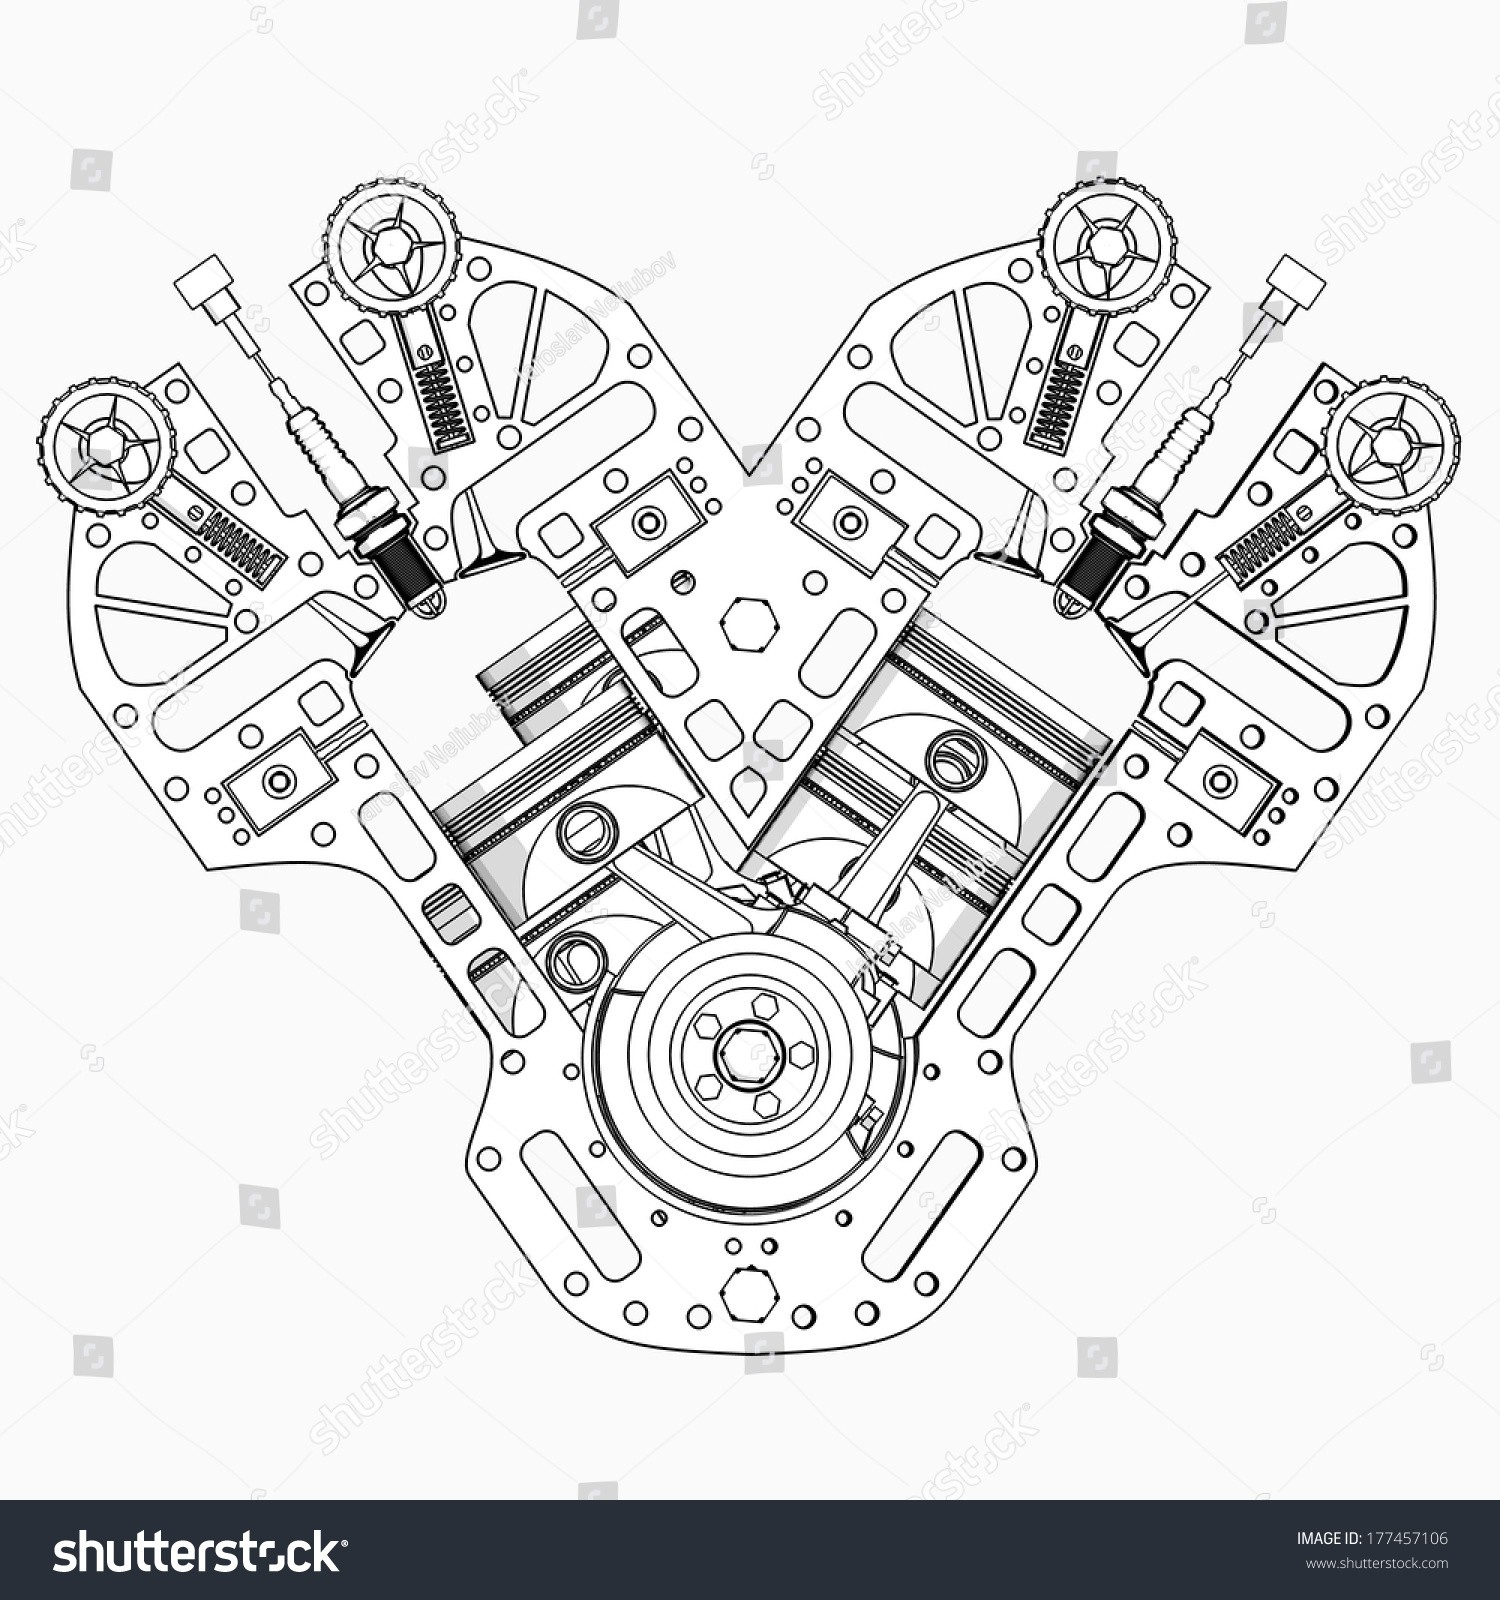 Animated V8 Engine Diagram My Wiring Car Cartoon Illustration Outline High Resolution